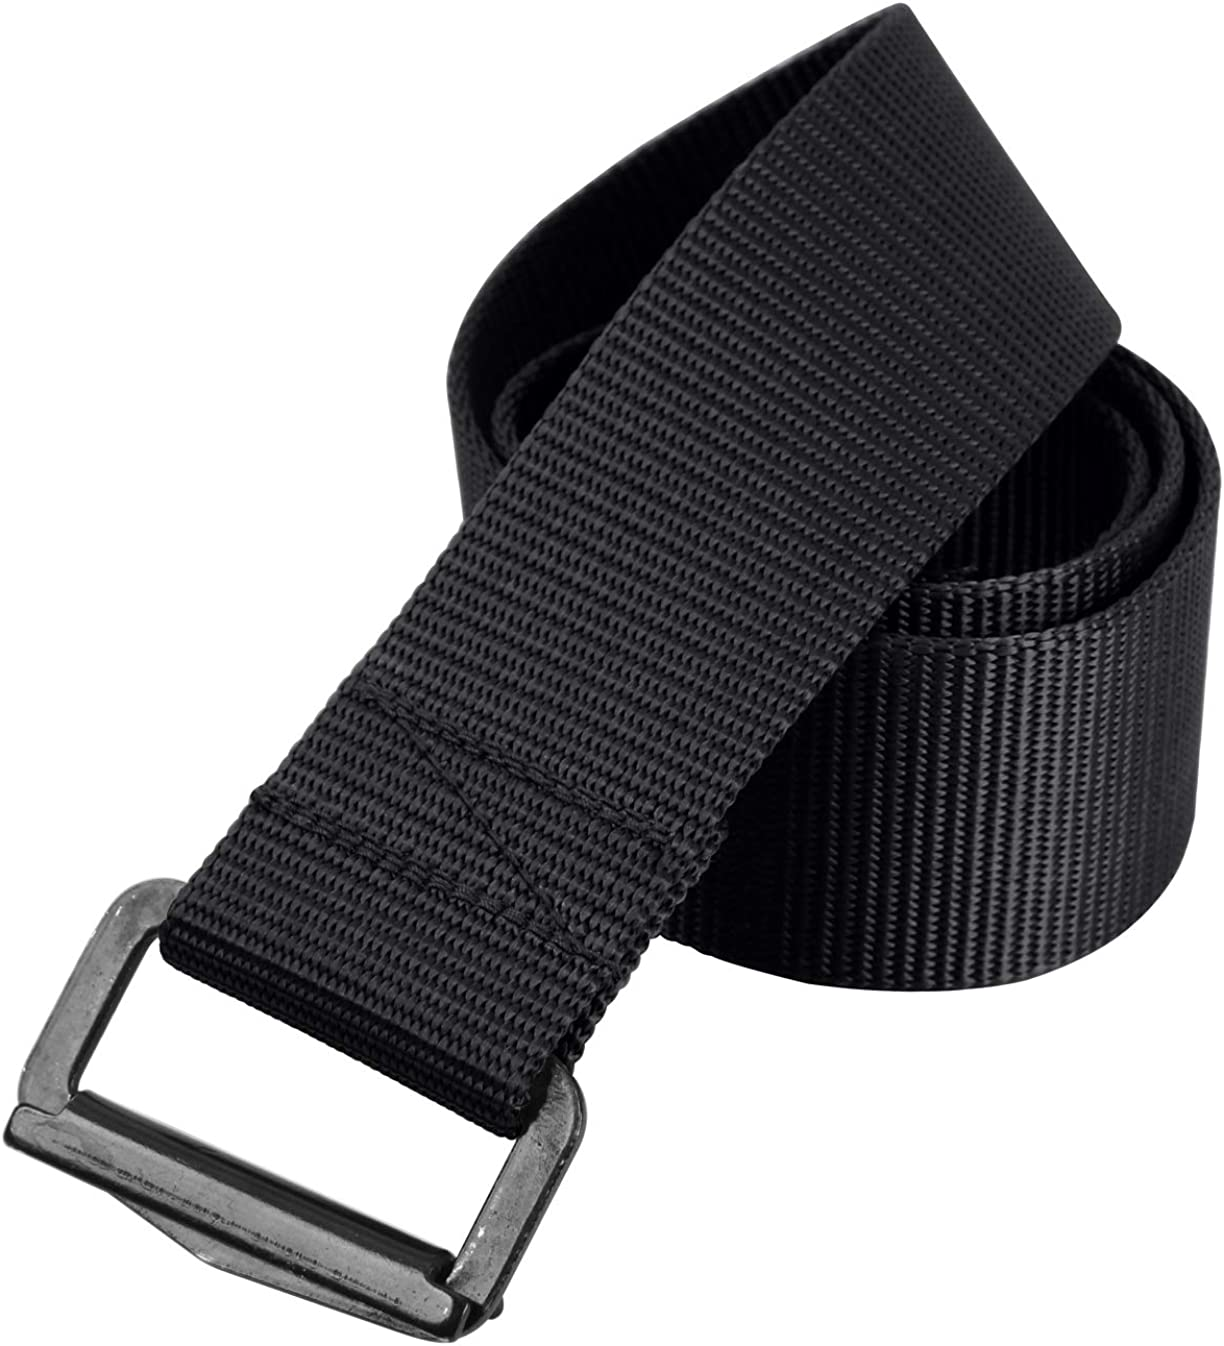 Rothco Riggers Max 83% OFF Belt Max 59% OFF